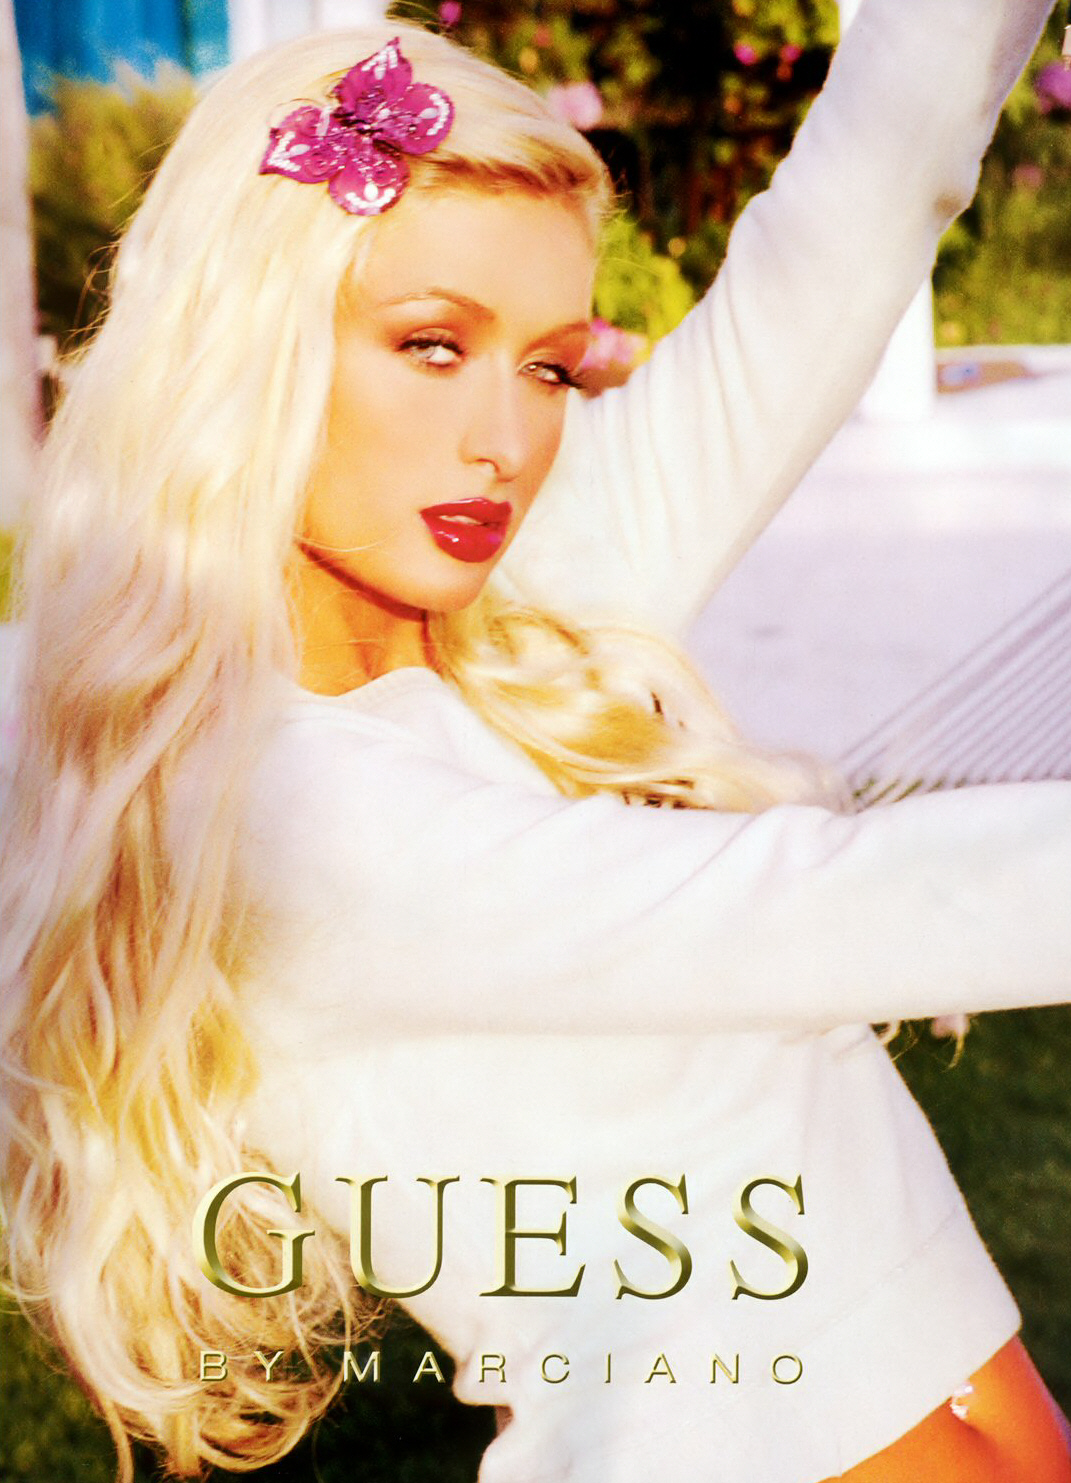 84920_paris_hilton_guess_2110_122_908lo.jpg